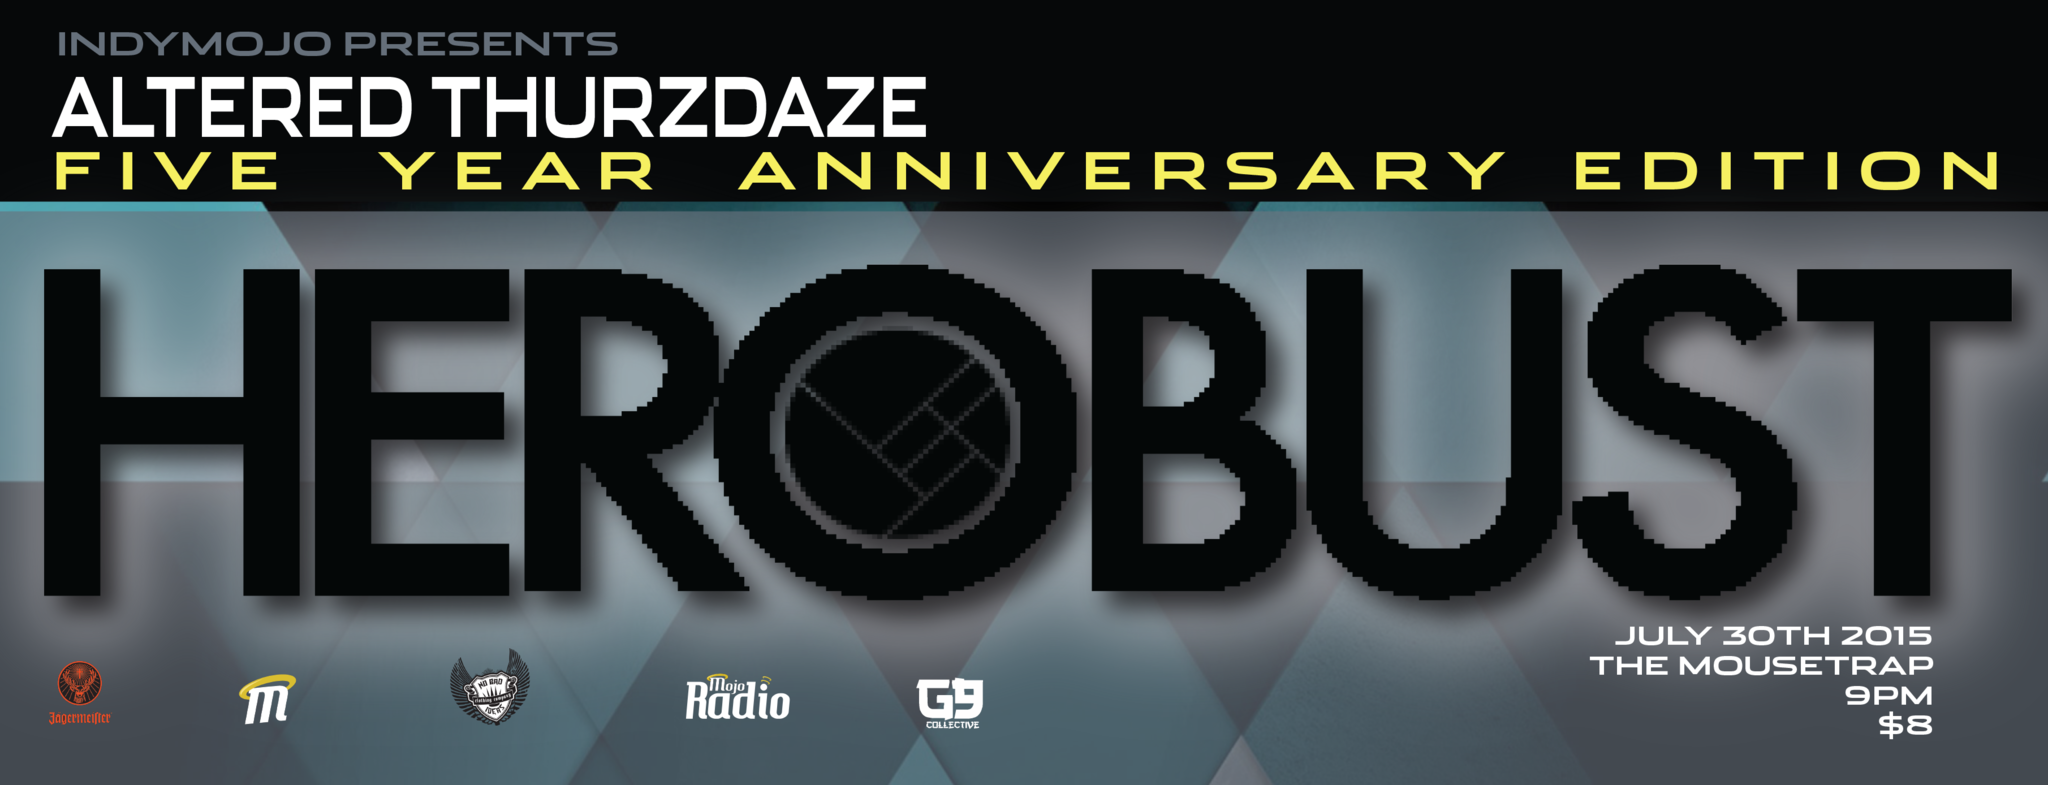 IndyMojo Presents: Altered Thurzdaze 5 Year Anniversary w/ HEROBUST